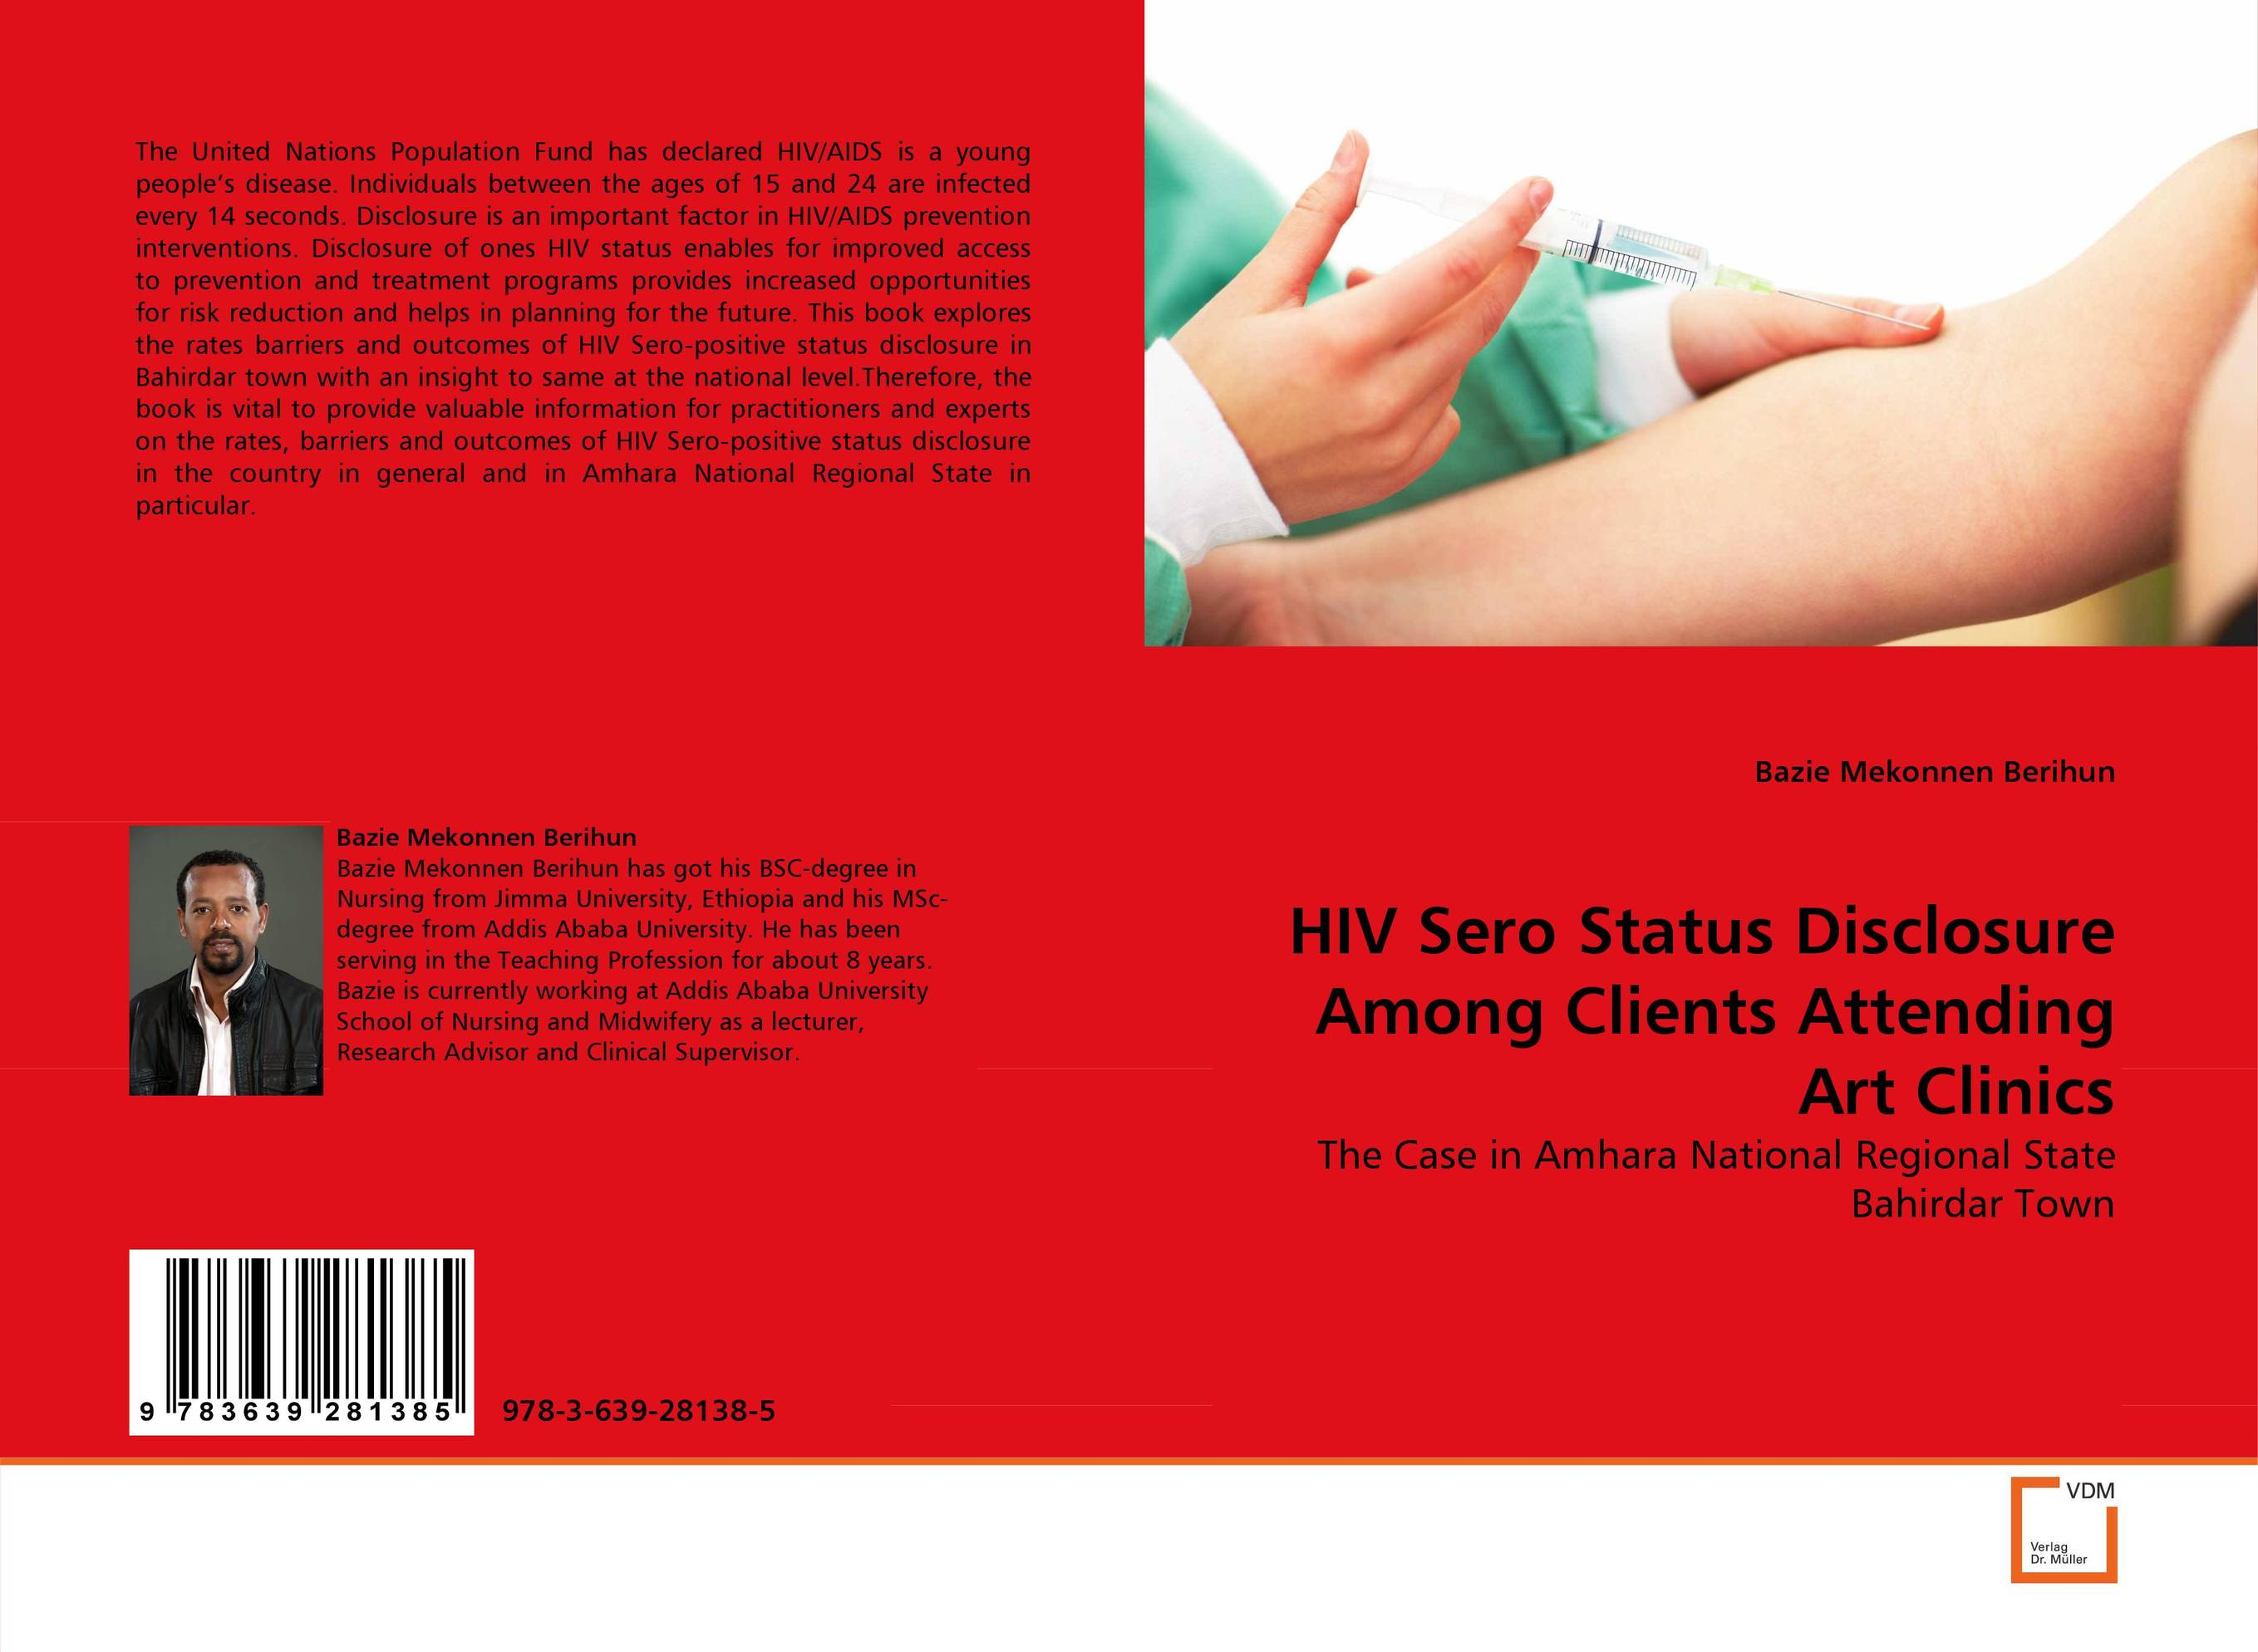 HIV Sero Status Disclosure Among Clients Attending Art Clinics nutritional status of hiv positive patients